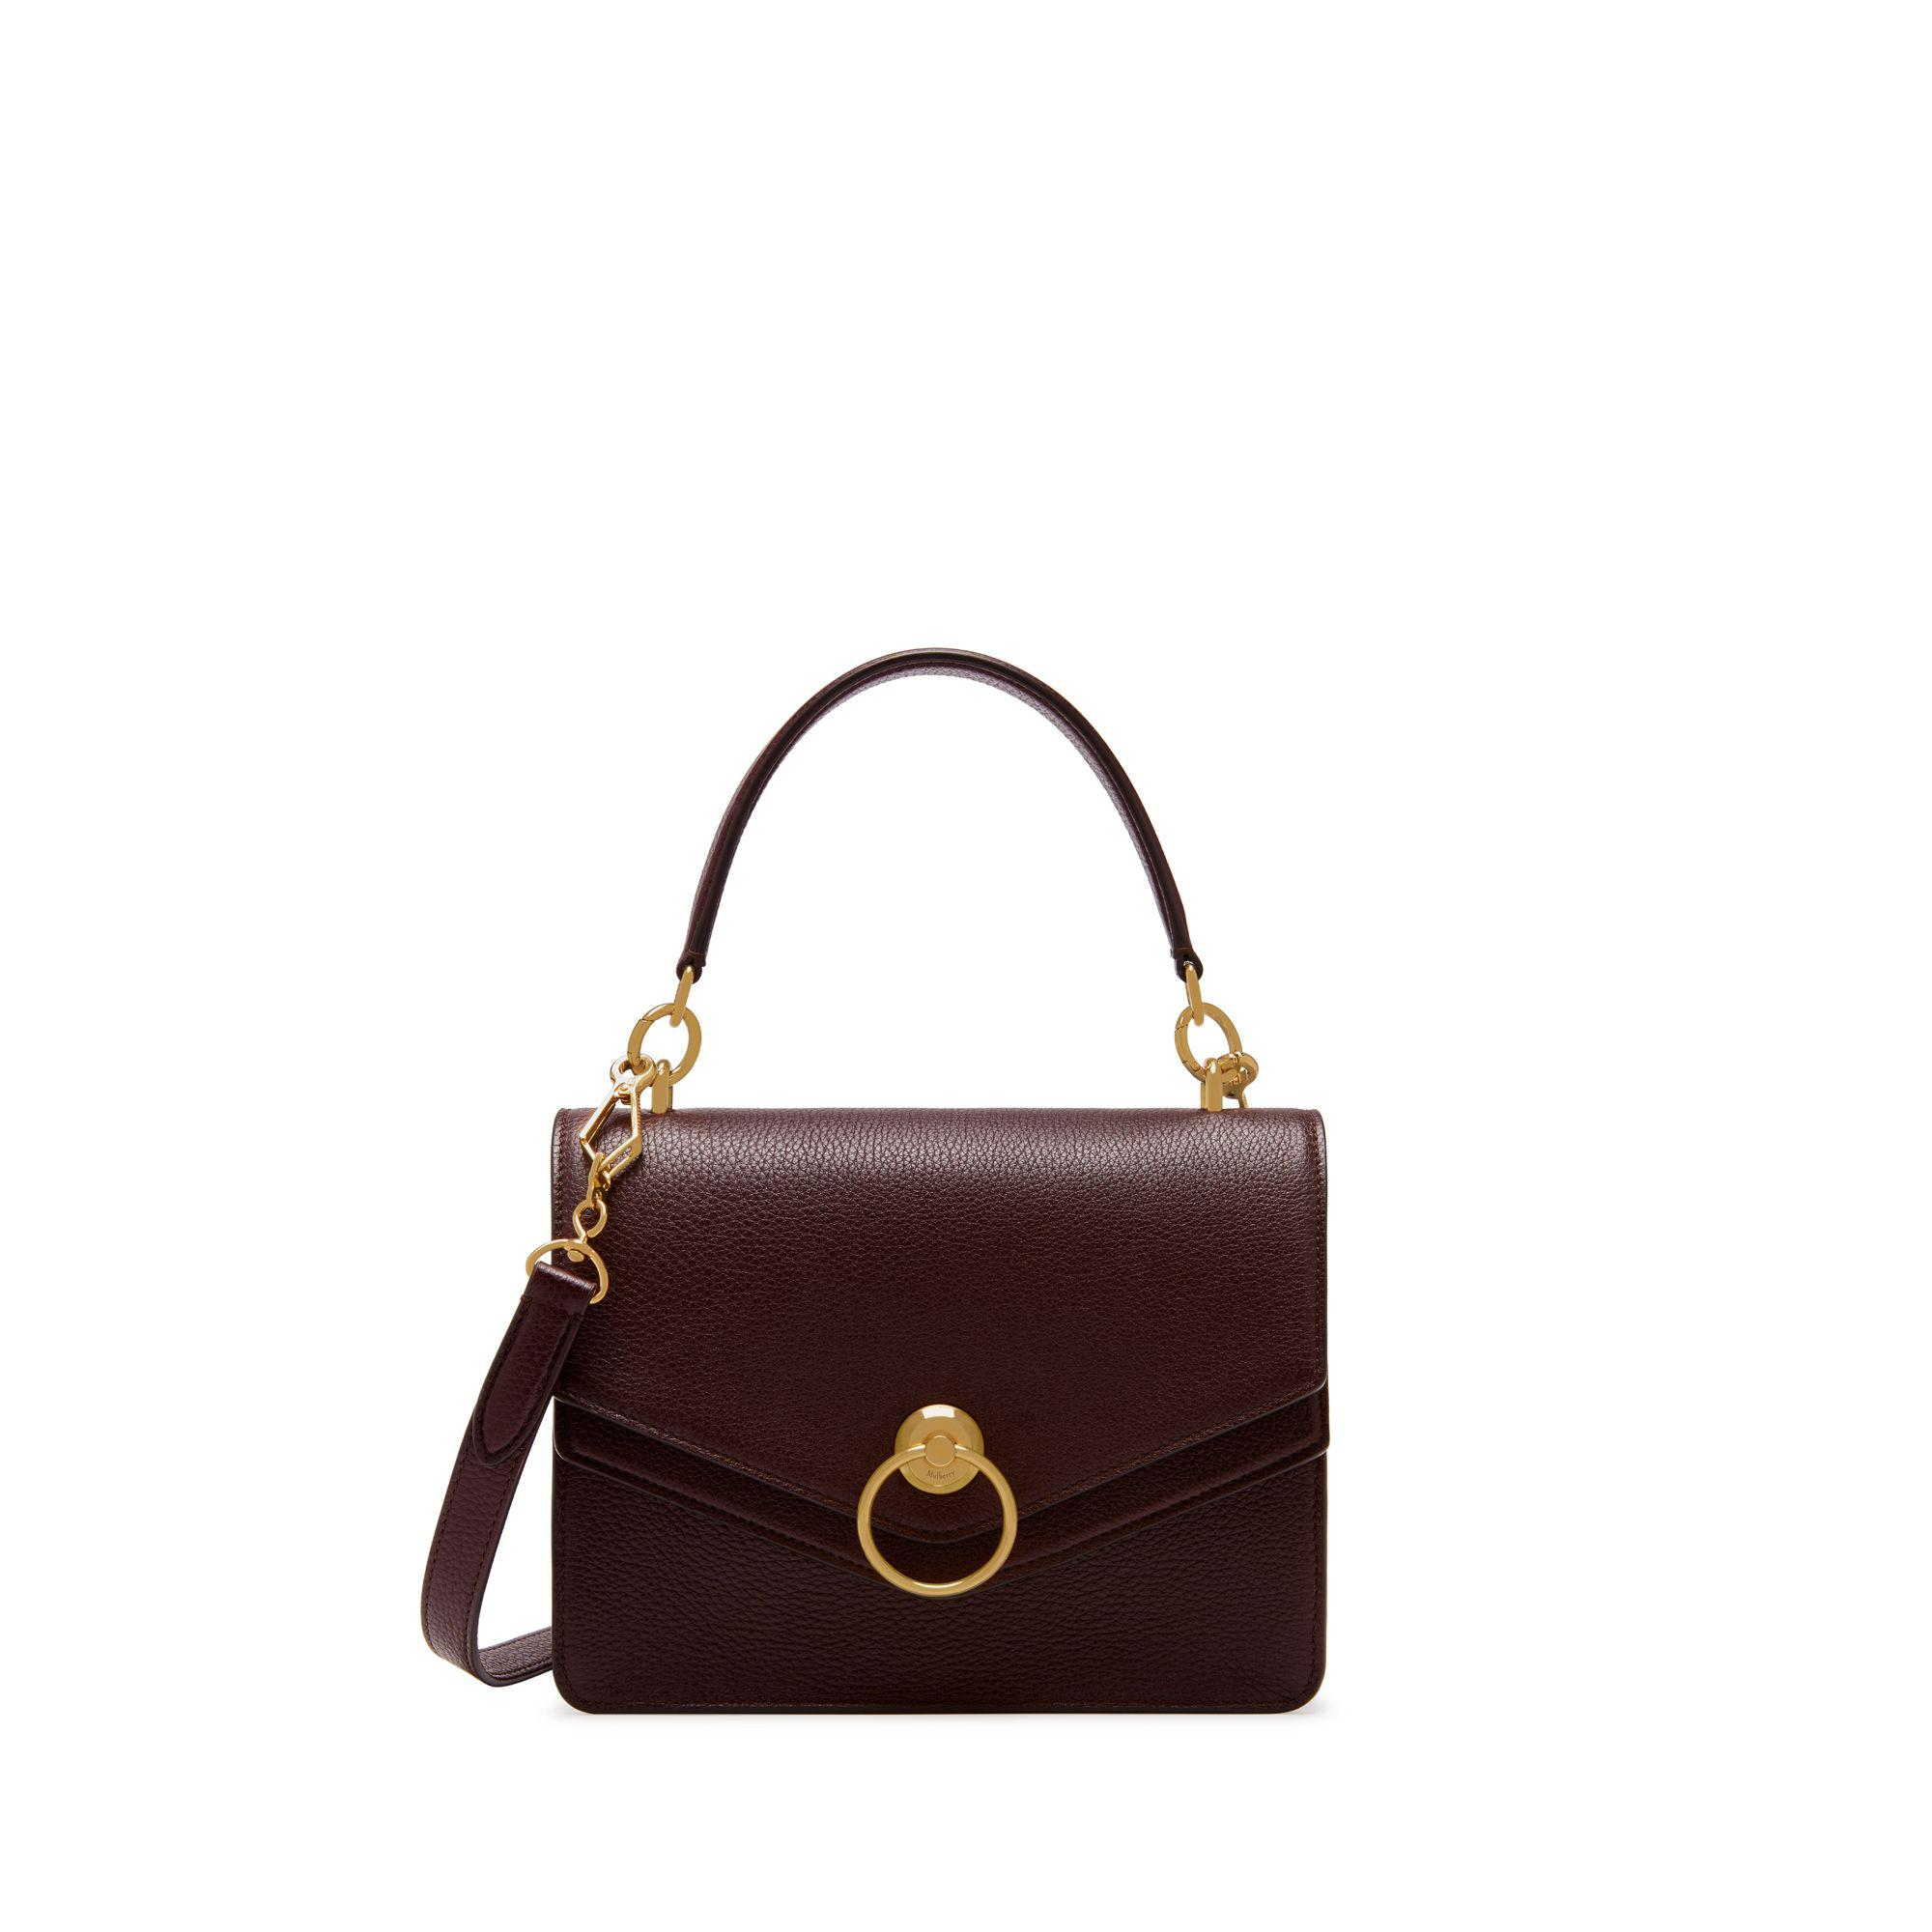 1d2fbdd77b75 Lyst - Mulberry Harlow Satchel In Oxblood Small Classic Grain